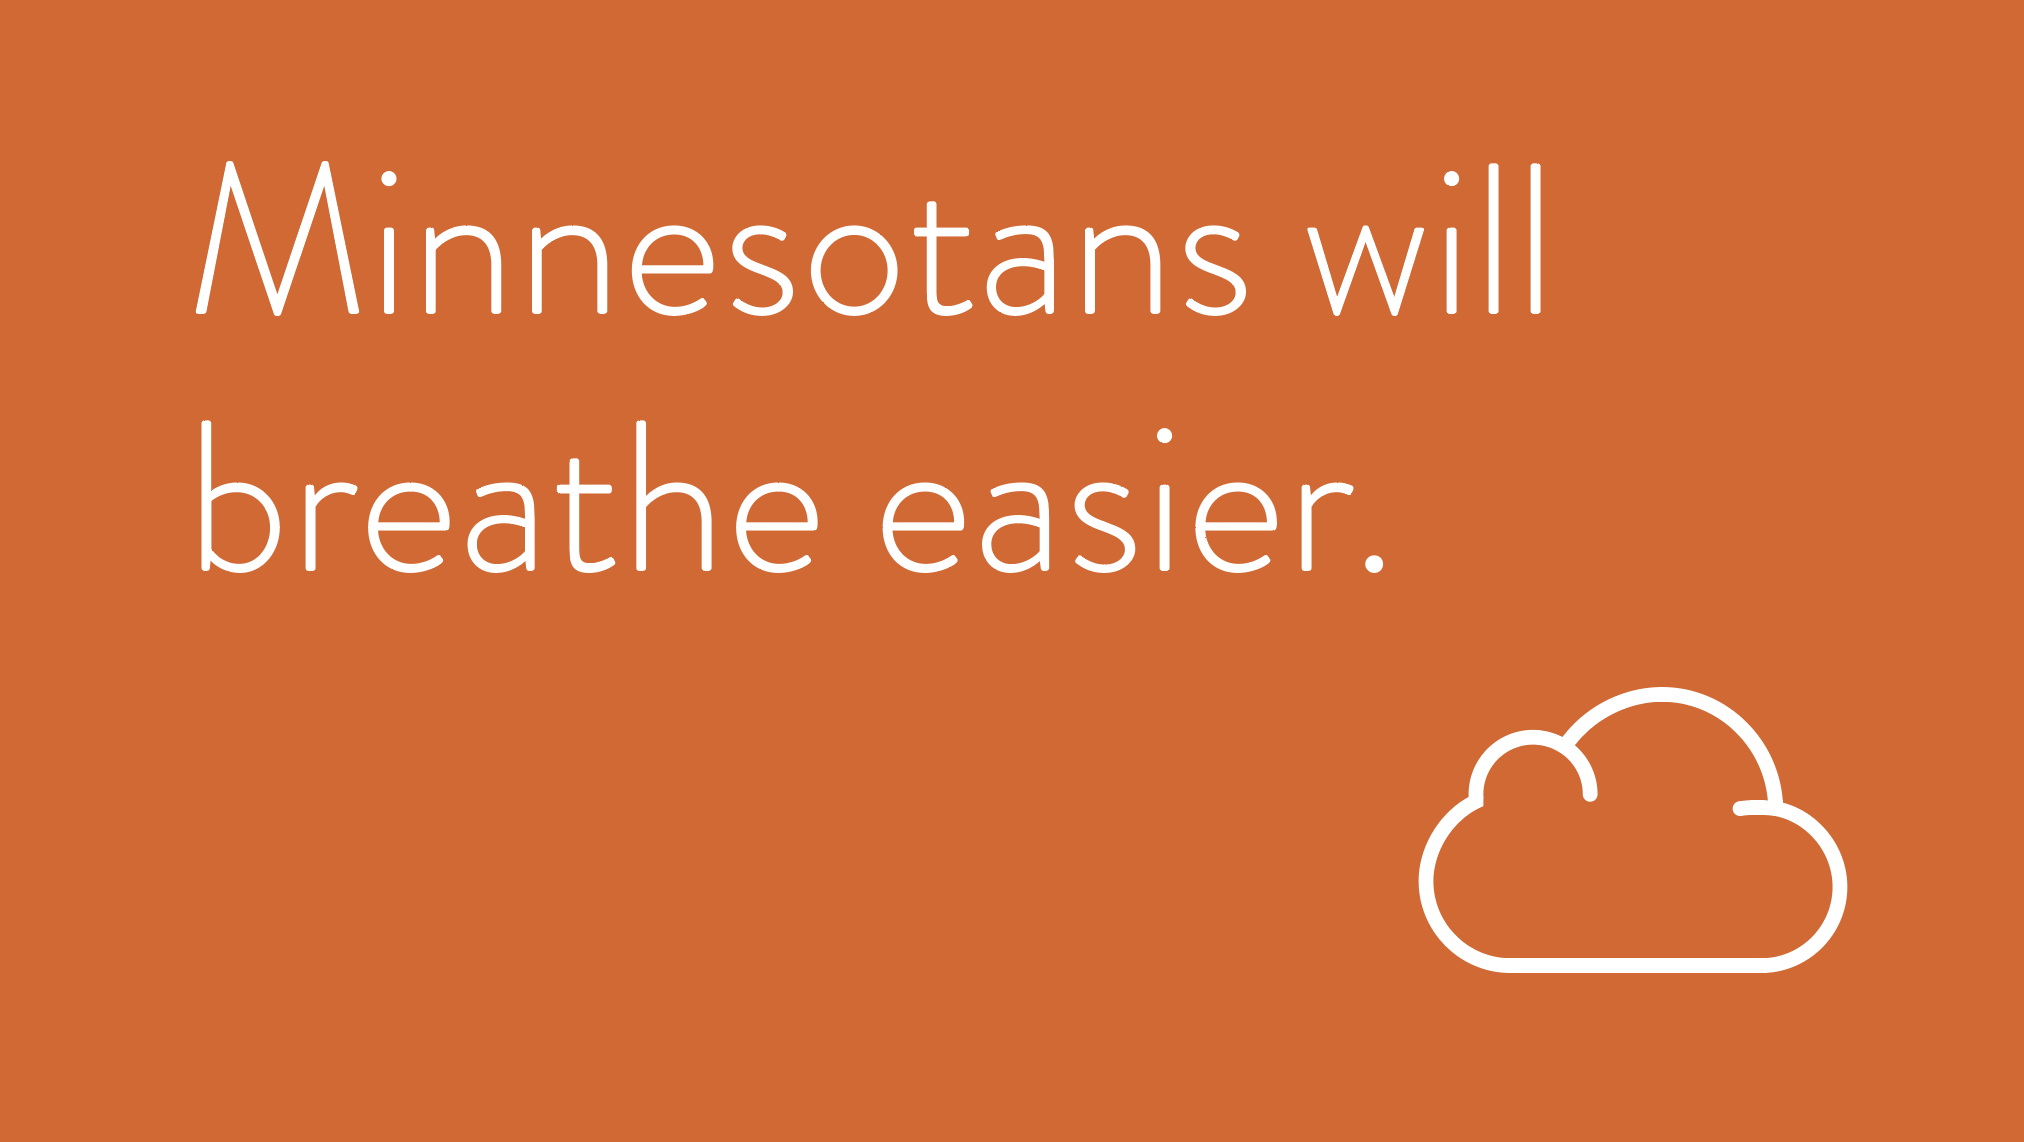 Minnesotans will breathe easier.